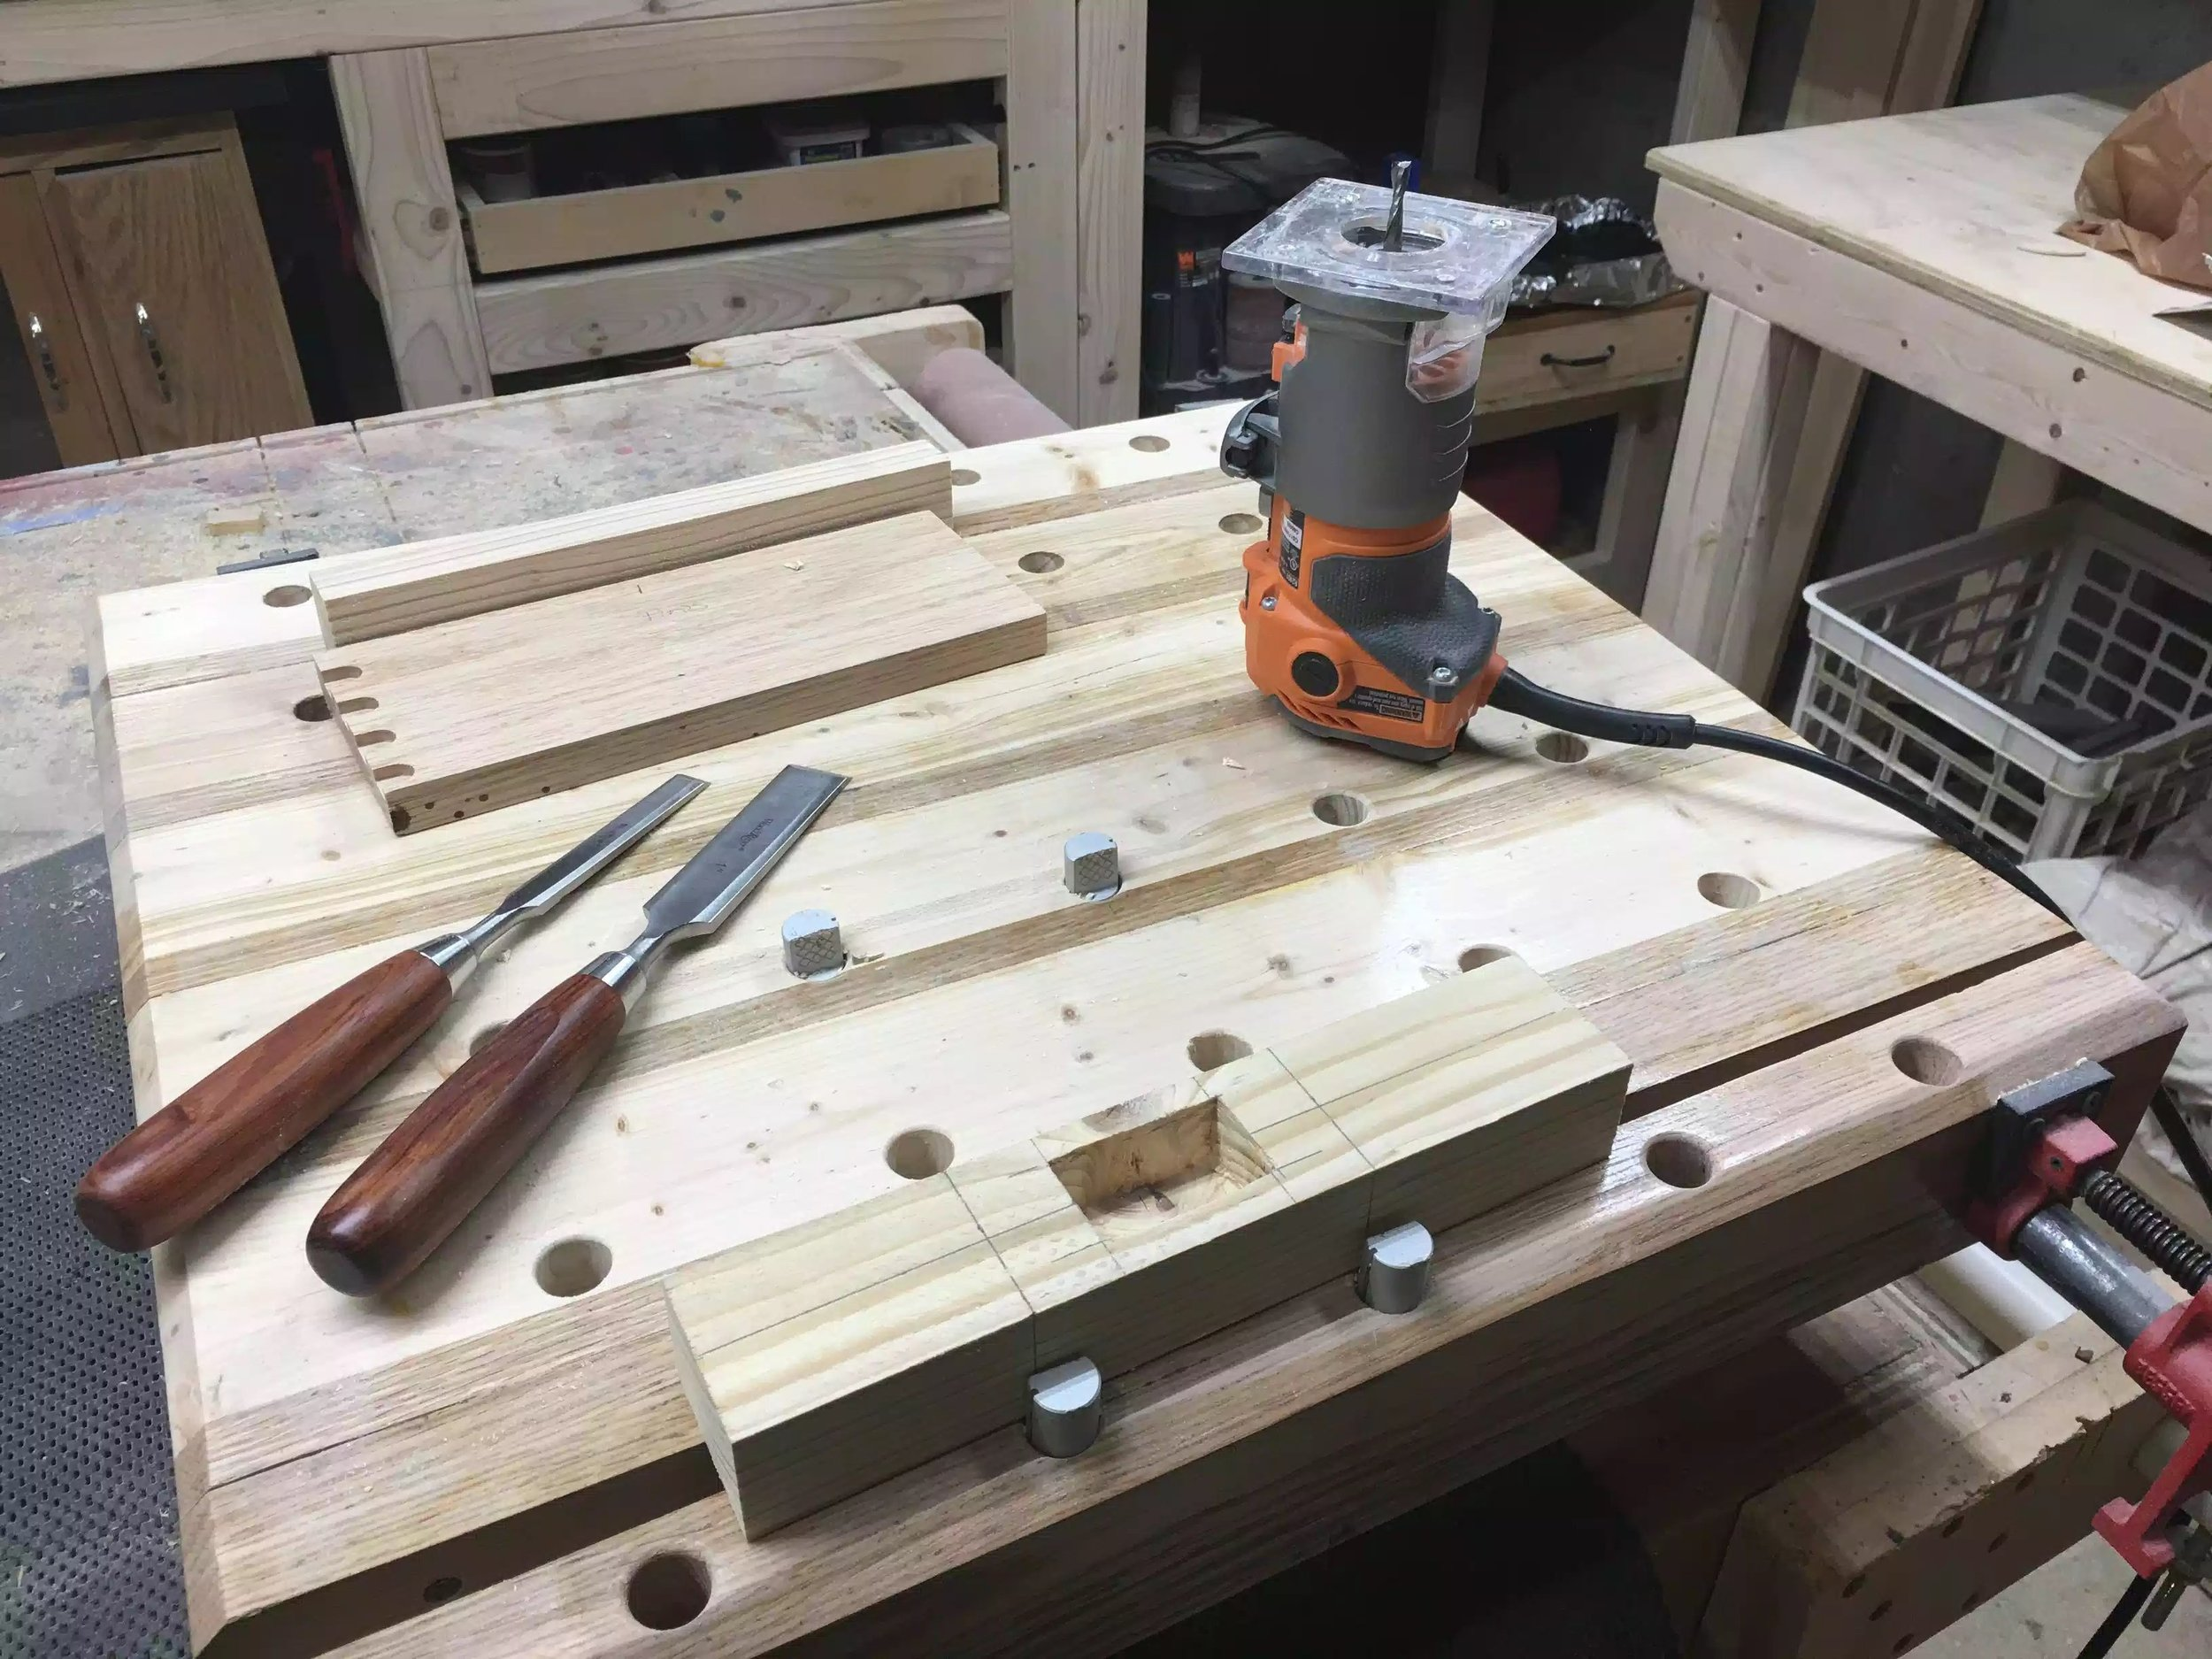 Here I just hogged out most of the mortise using my palm router and then I used my chisels to square the mortise corners.